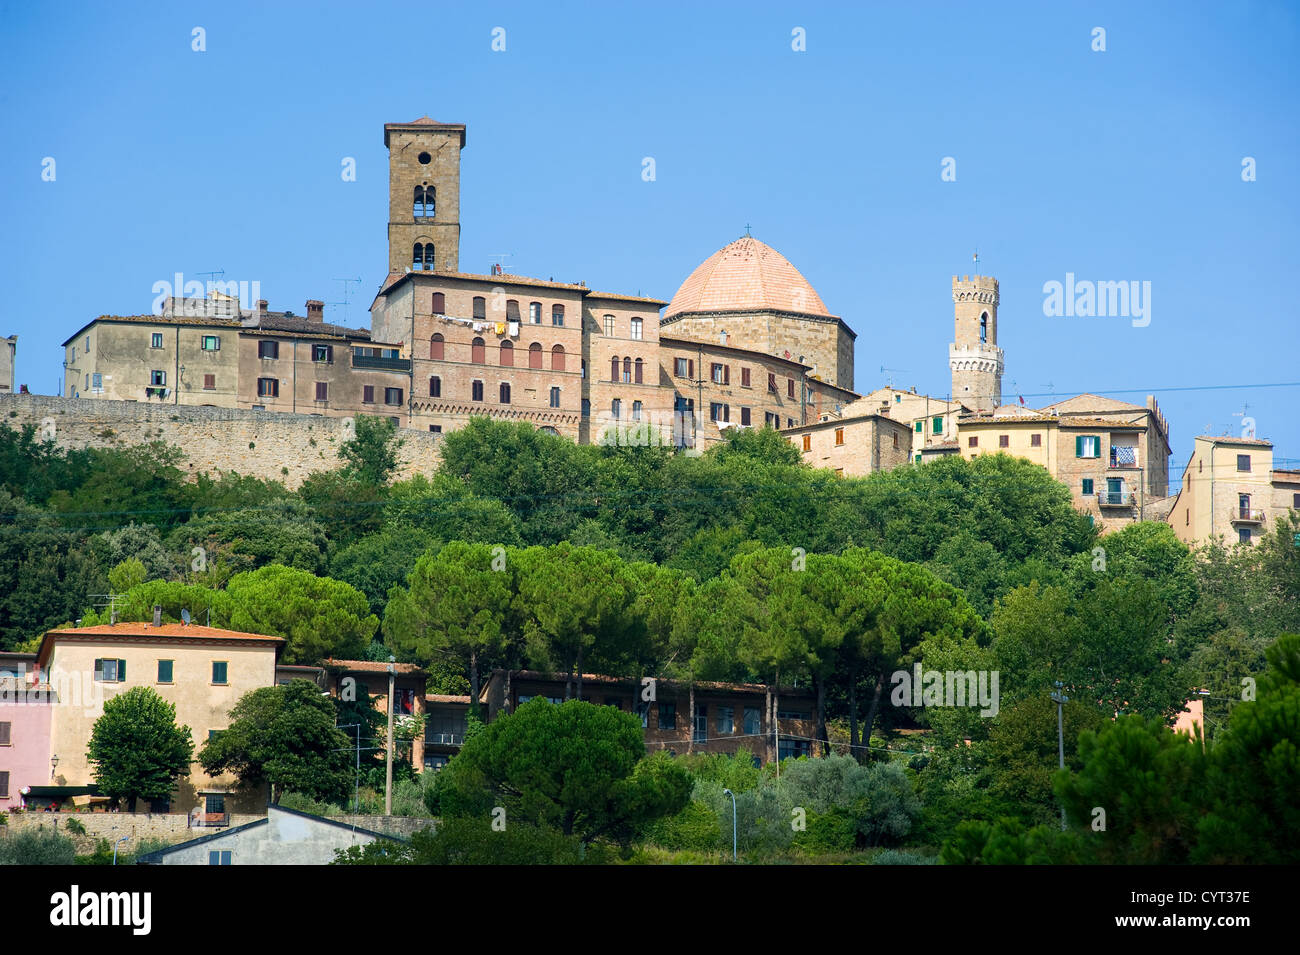 The city of Volterra in Tuscany in Italy. - Stock Image